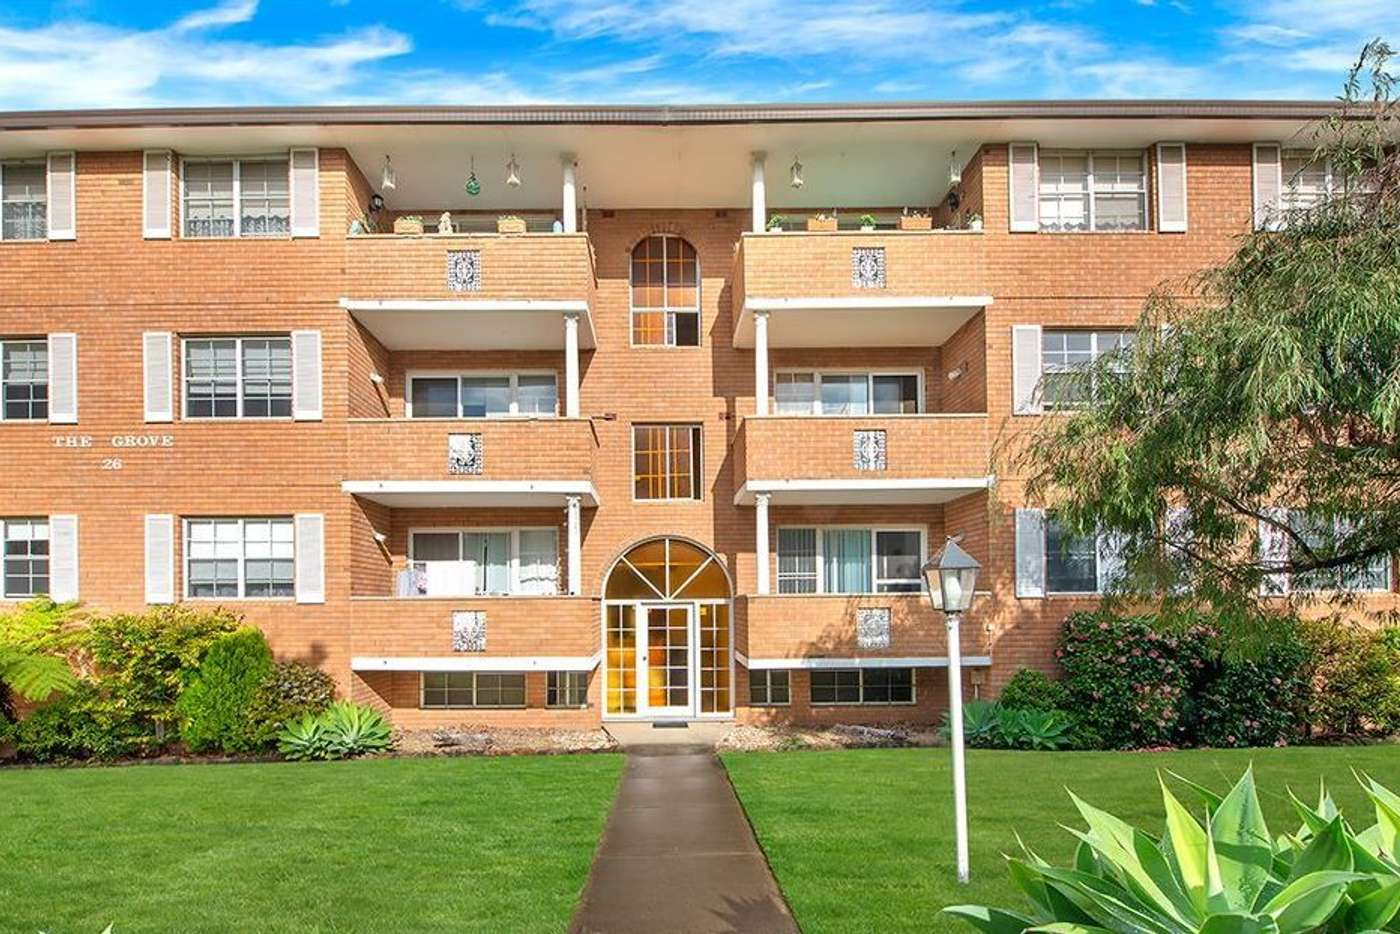 Main view of Homely apartment listing, 23/26-28 Orchard Street, West Ryde NSW 2114